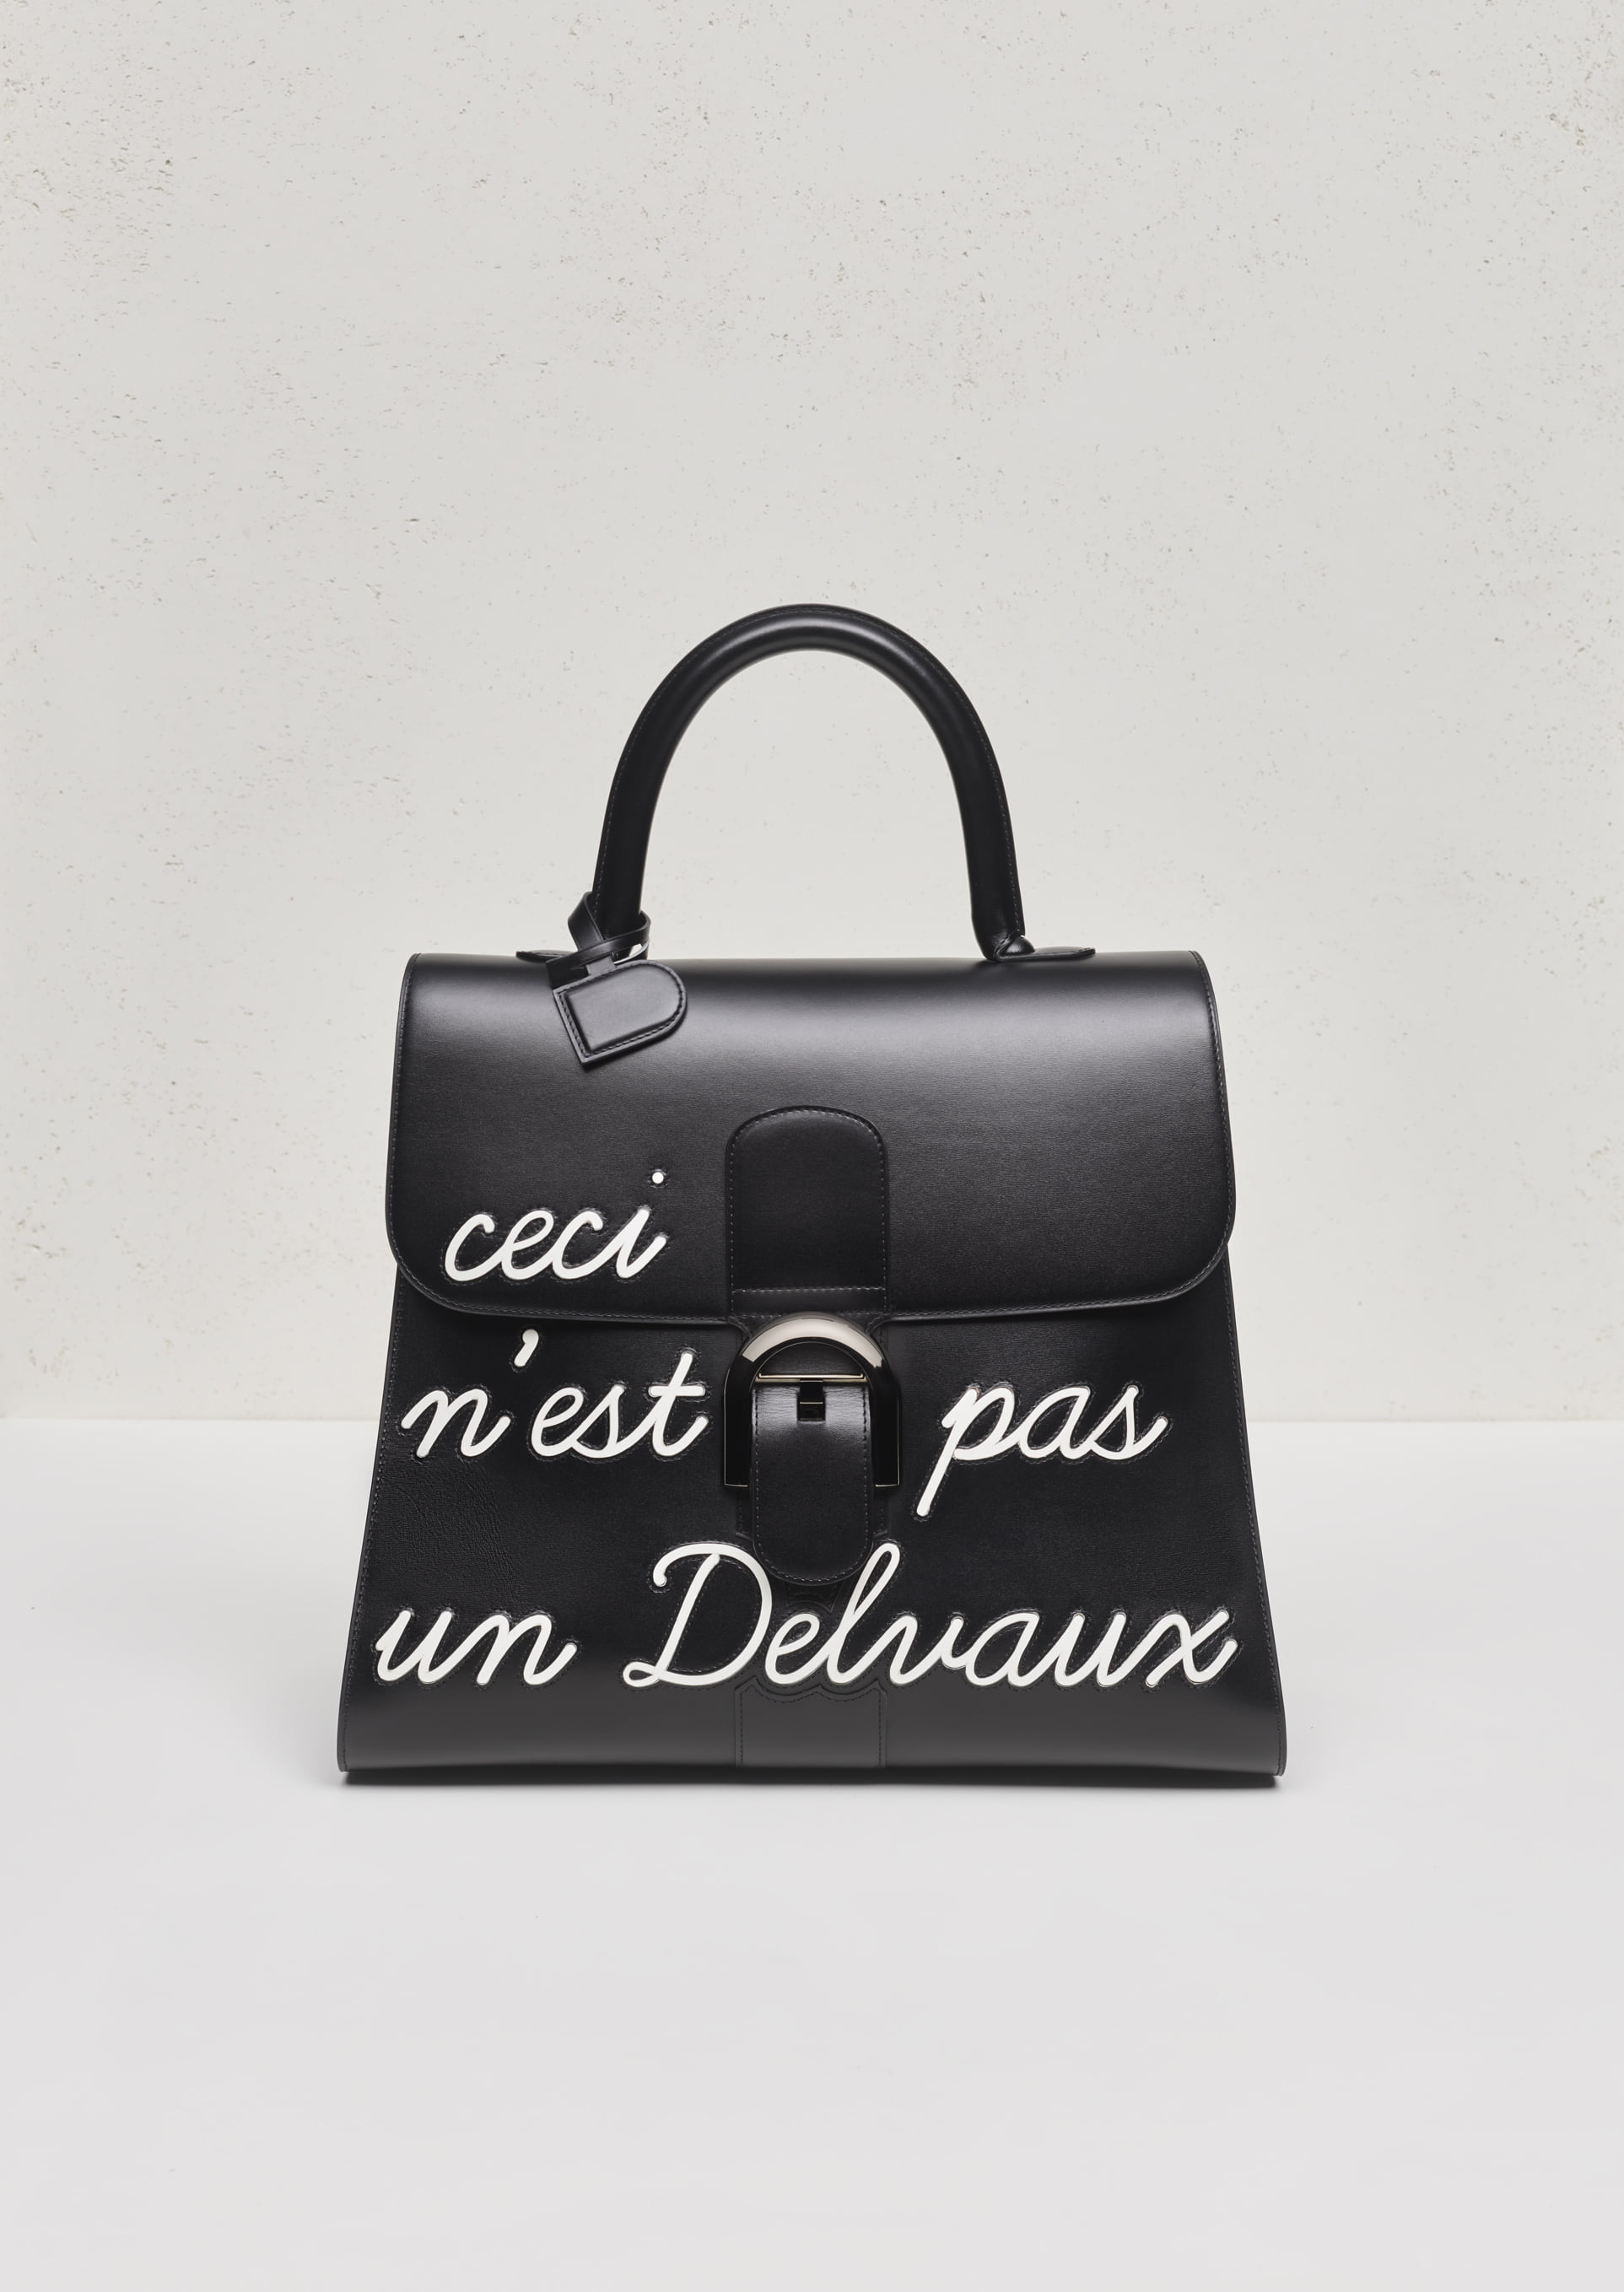 DELVAUX_AW1718--BRILLANT_BLACK_EDITION_HUMOUR_NOIR--5031